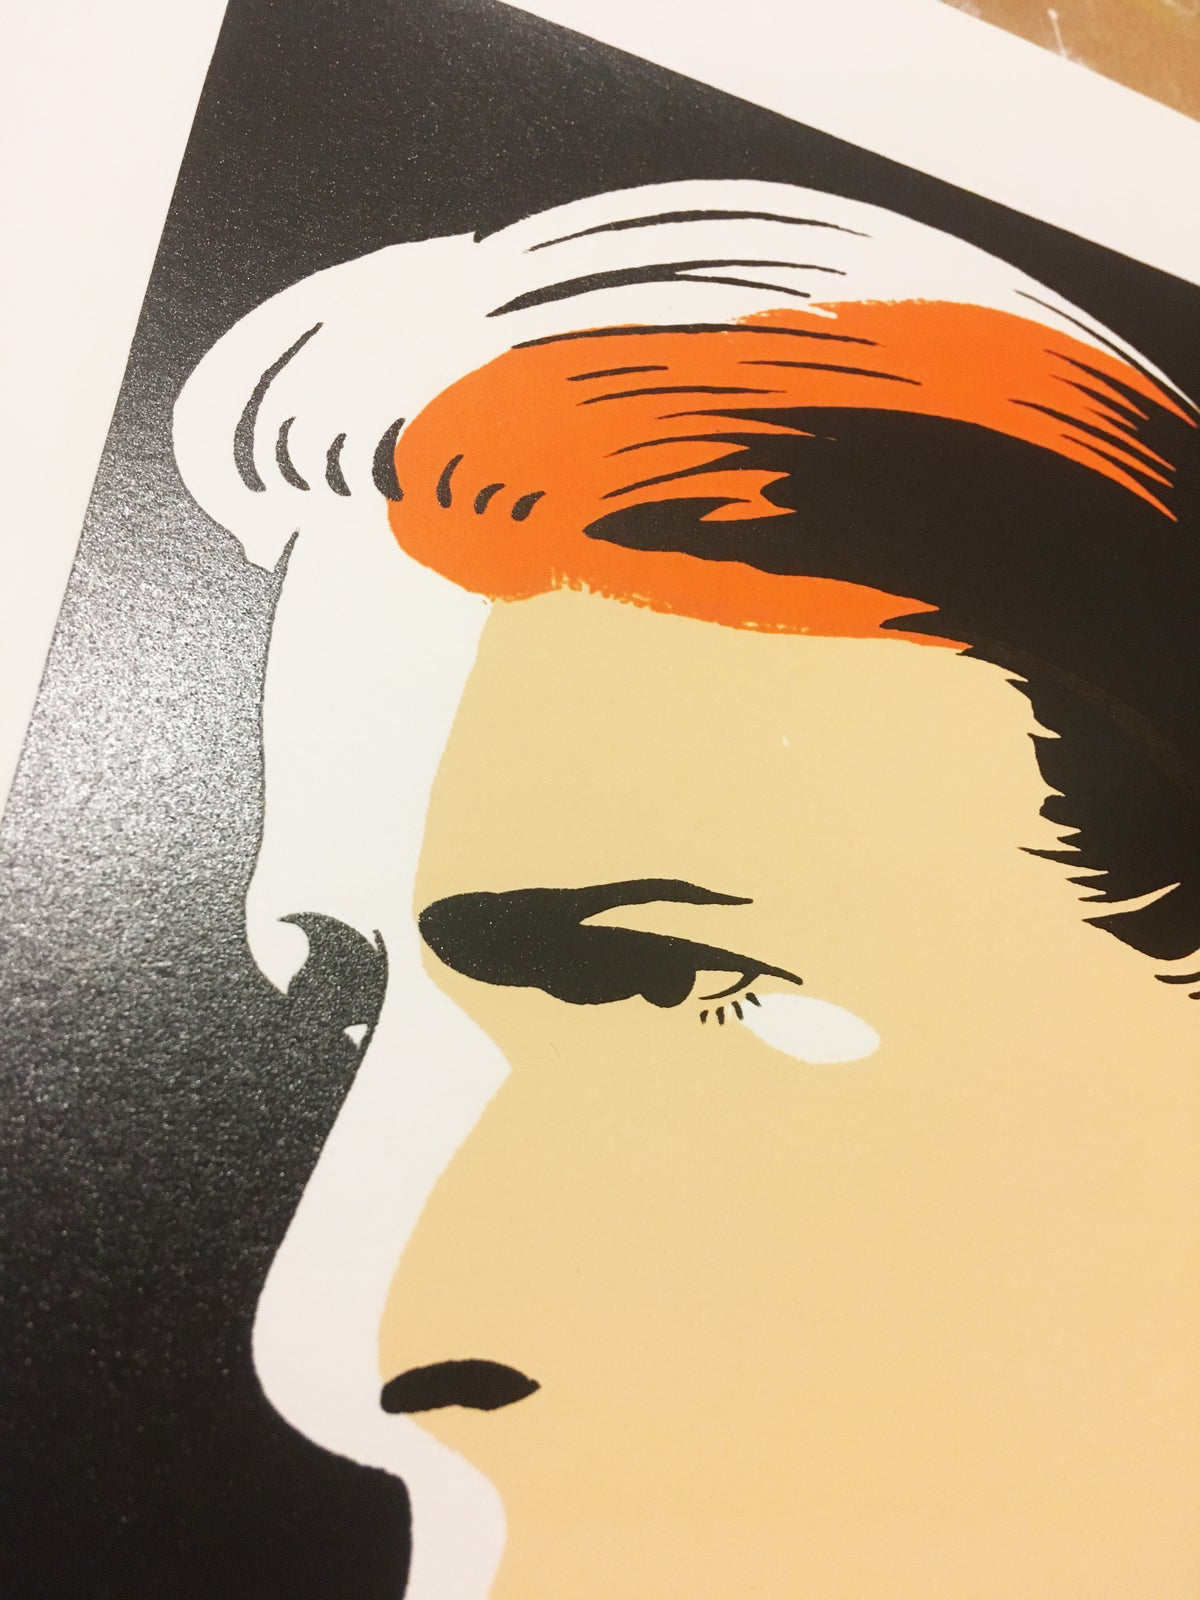 Image of Bowie misprint